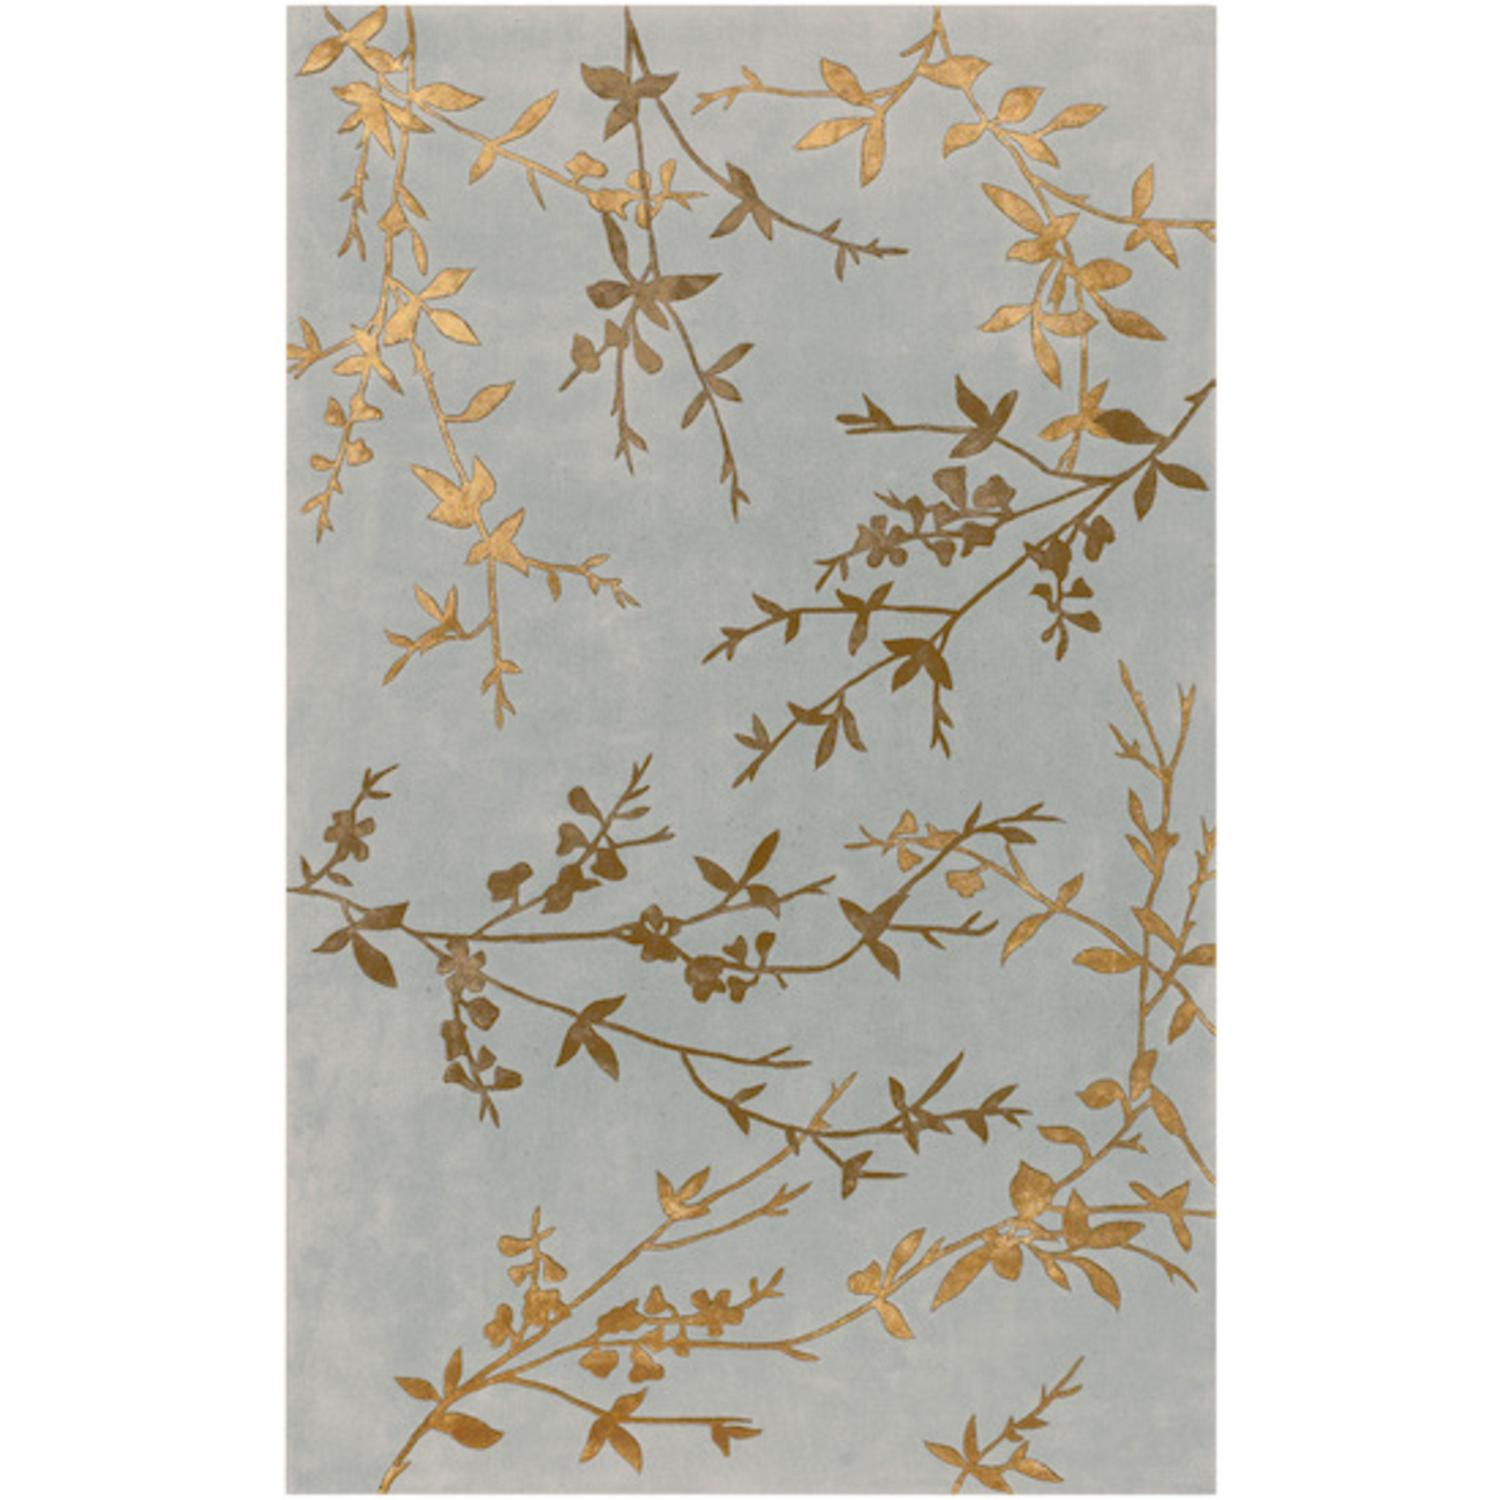 8' x 11' Asian Winter Branch Slate Gray and Gold Wool Area Throw Rug